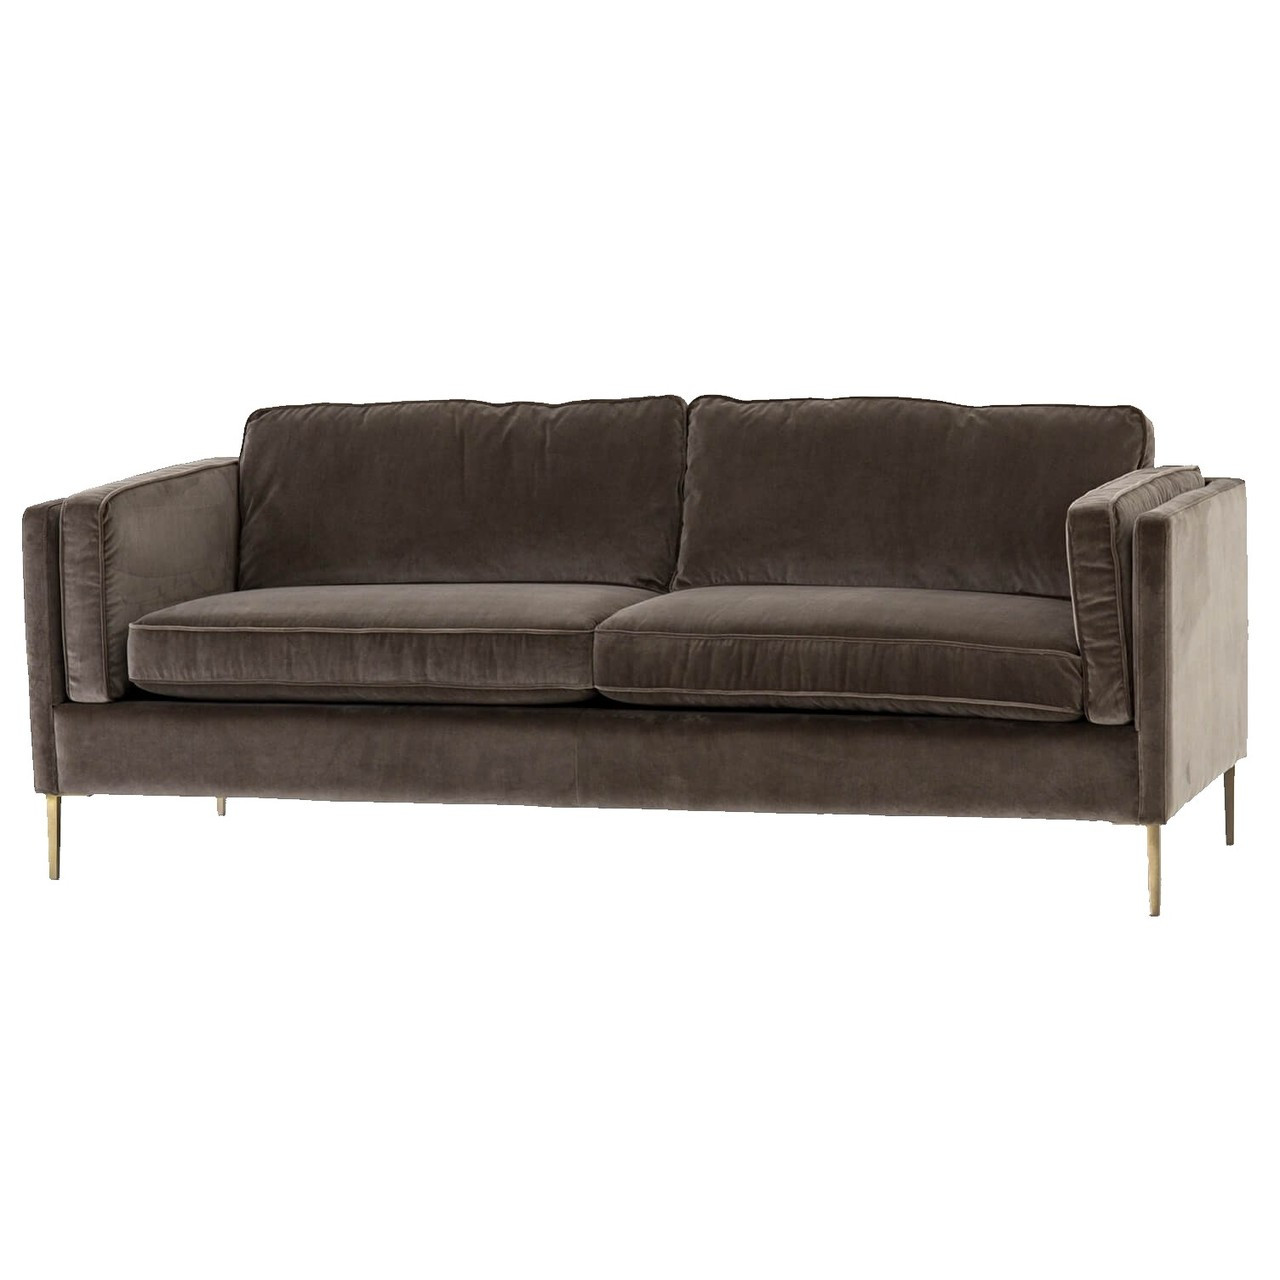 Emery Mid Century Modern Brown Sofa With Brass Legs